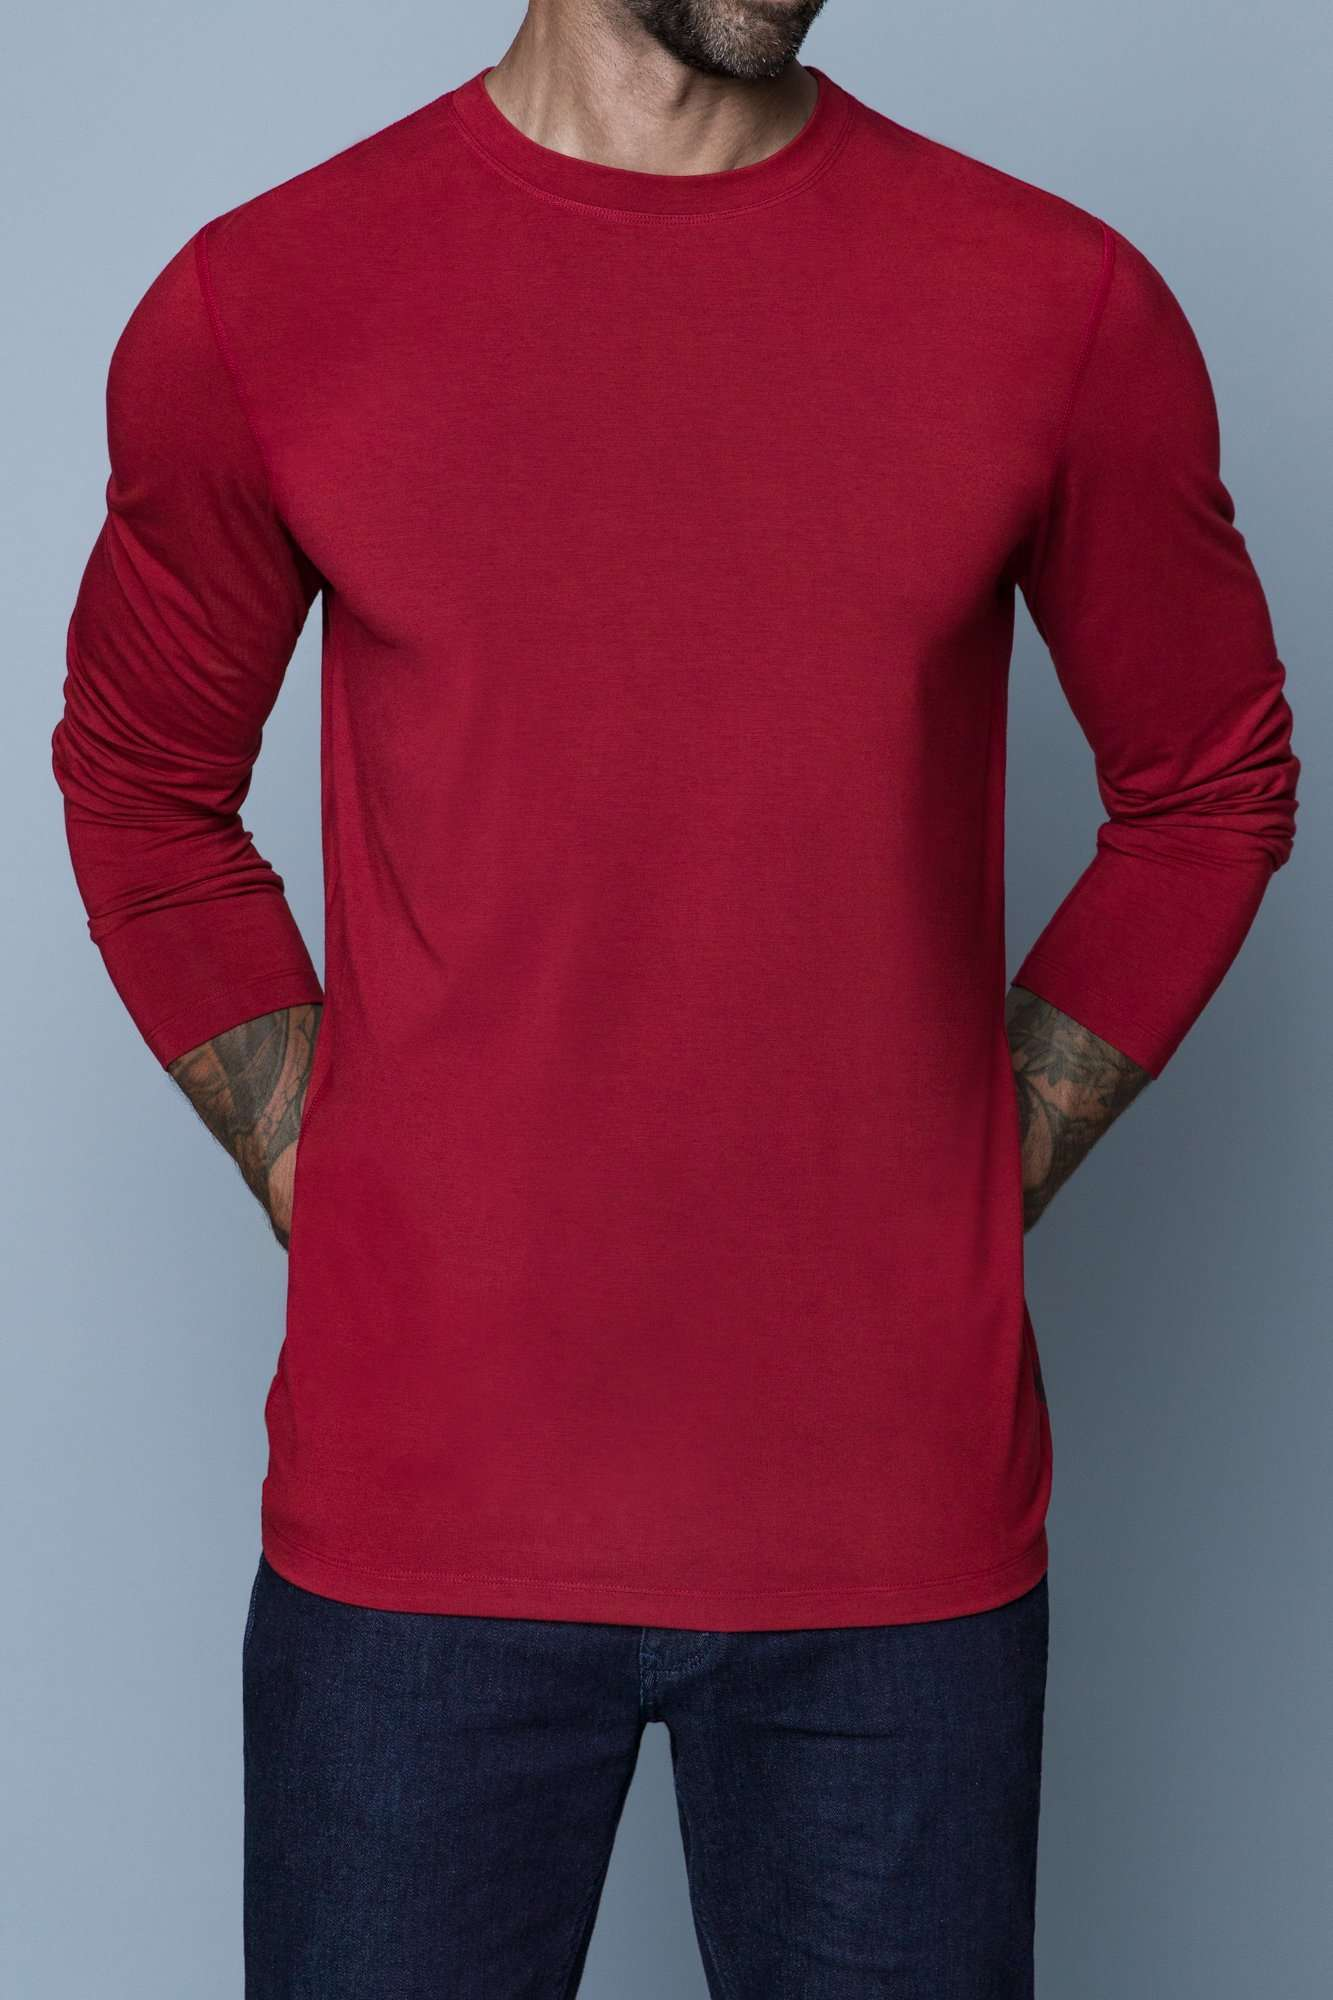 The Navas Lab Mac long-sleeve shirt for tall guys in red. The perfect tall slim shirt for tall and slim guys looking for style and comfort.